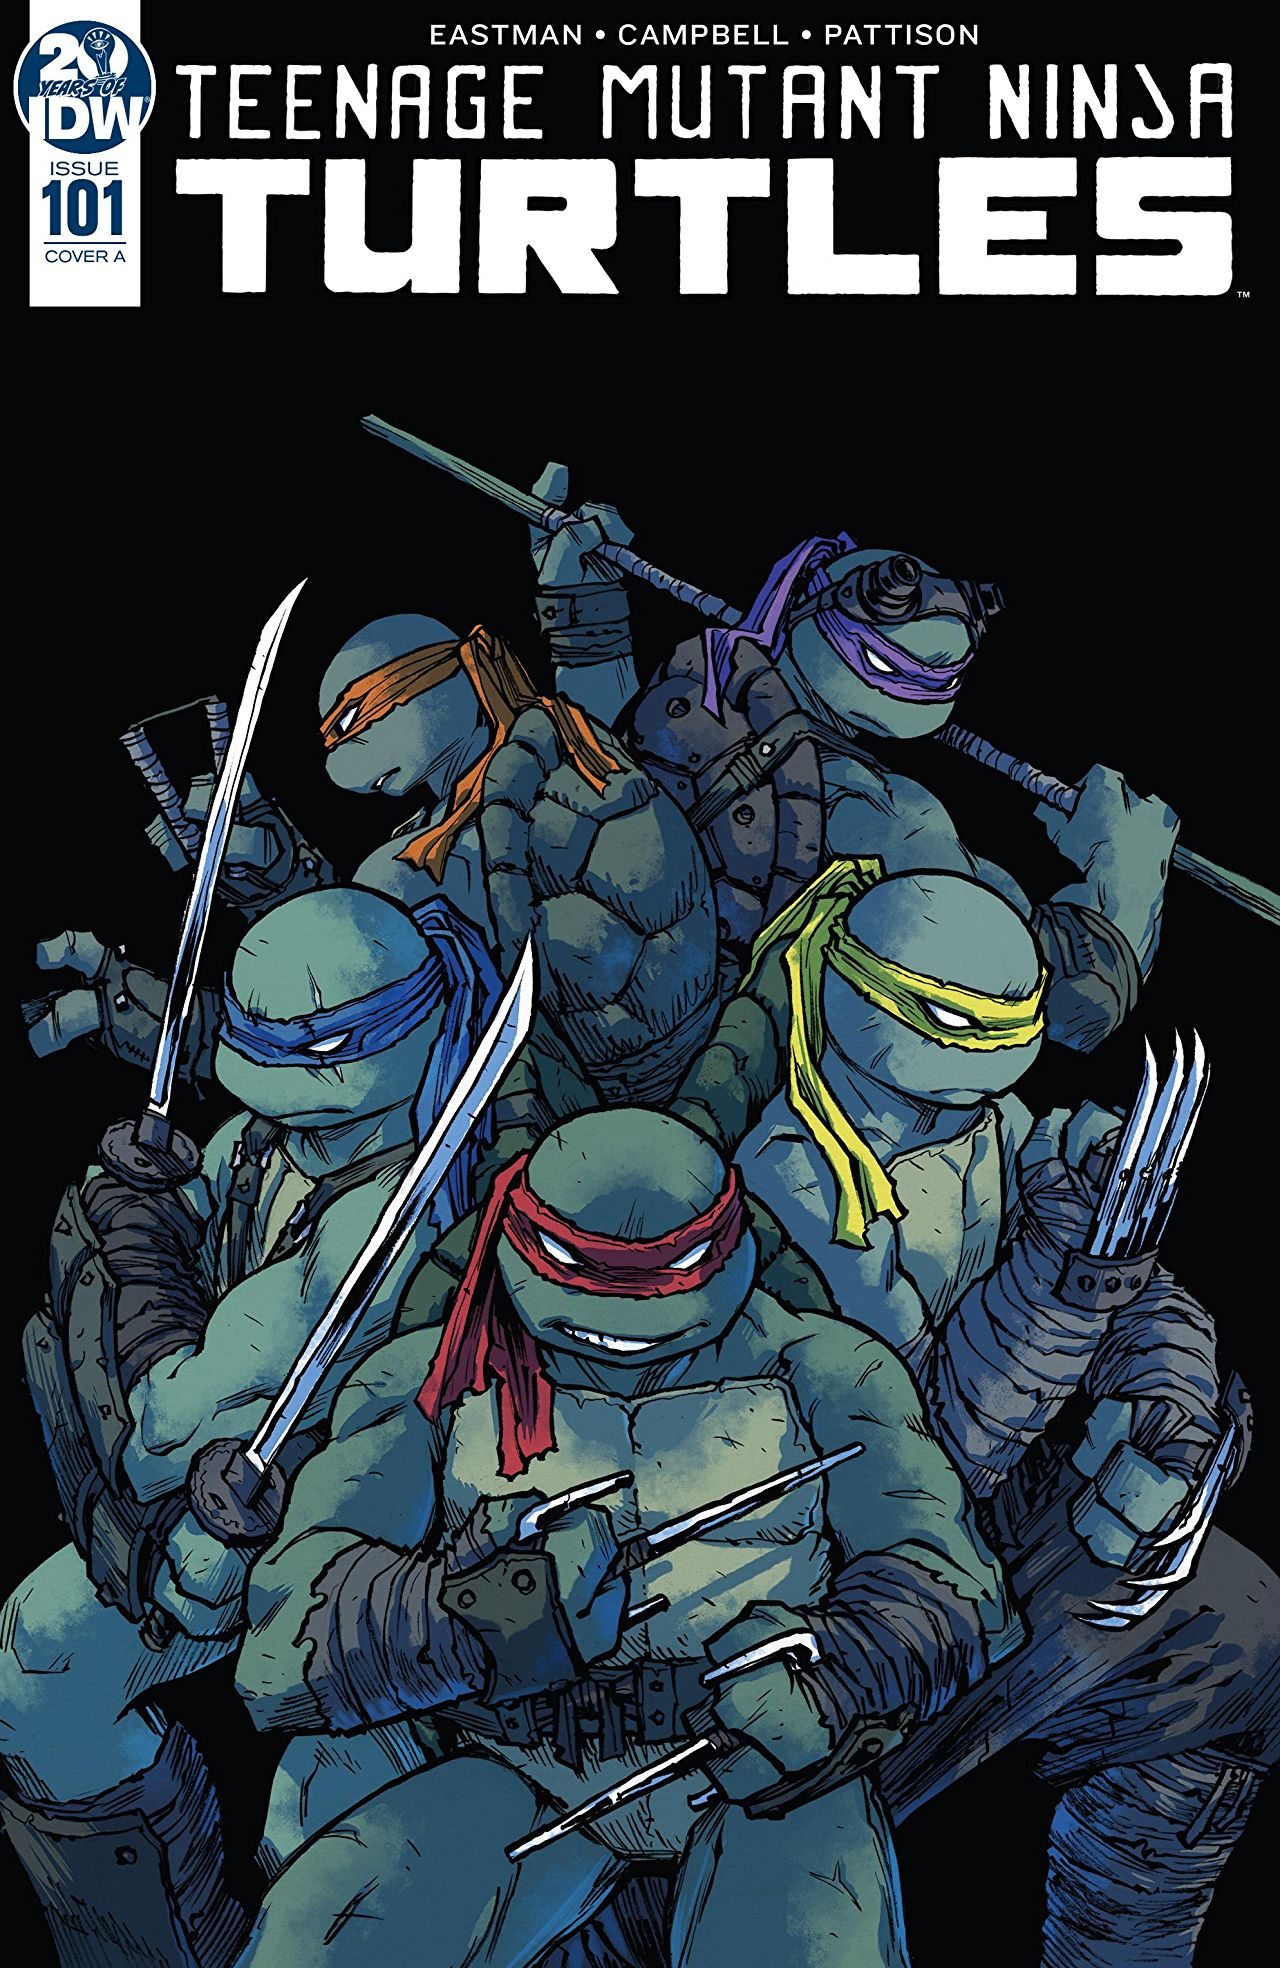 Teenage Mutant Ninja Turtles #101. IDW Publishing